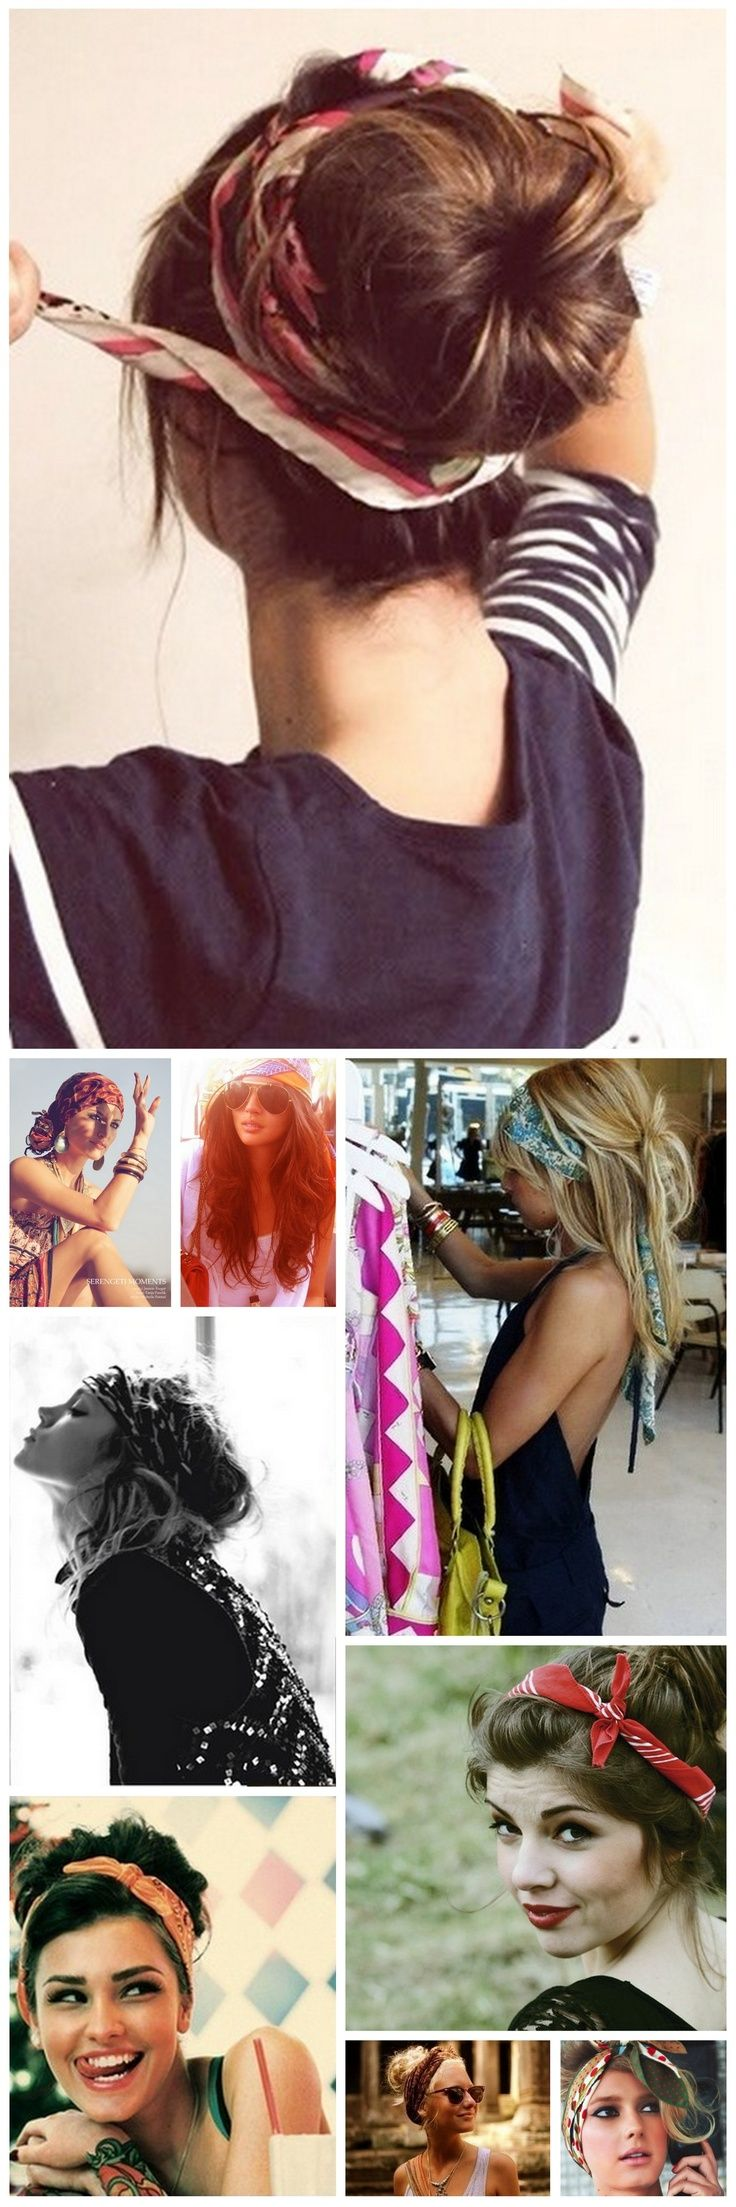 best cheveux images on pinterest long hair cute hairstyles